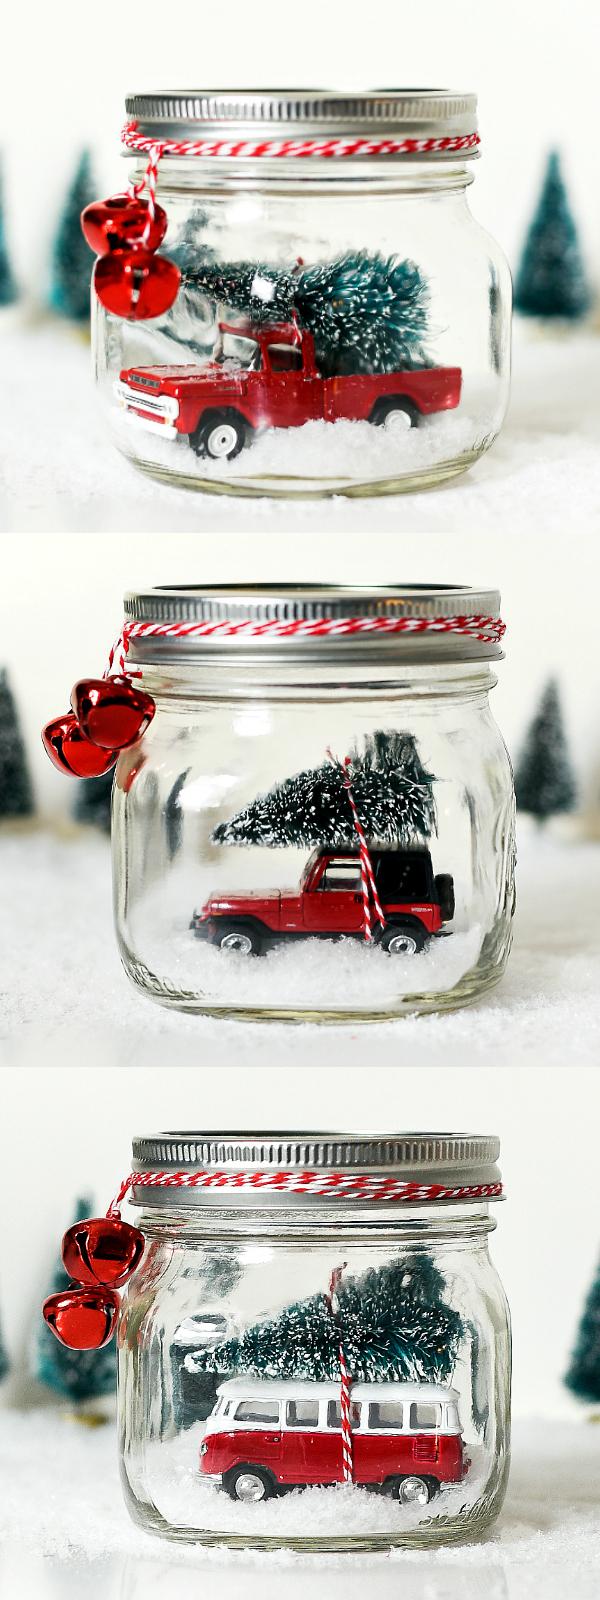 Jeep In Snow >> Mason Jar Snow Globe with Vintage Jeep Wrangler - Mason ...